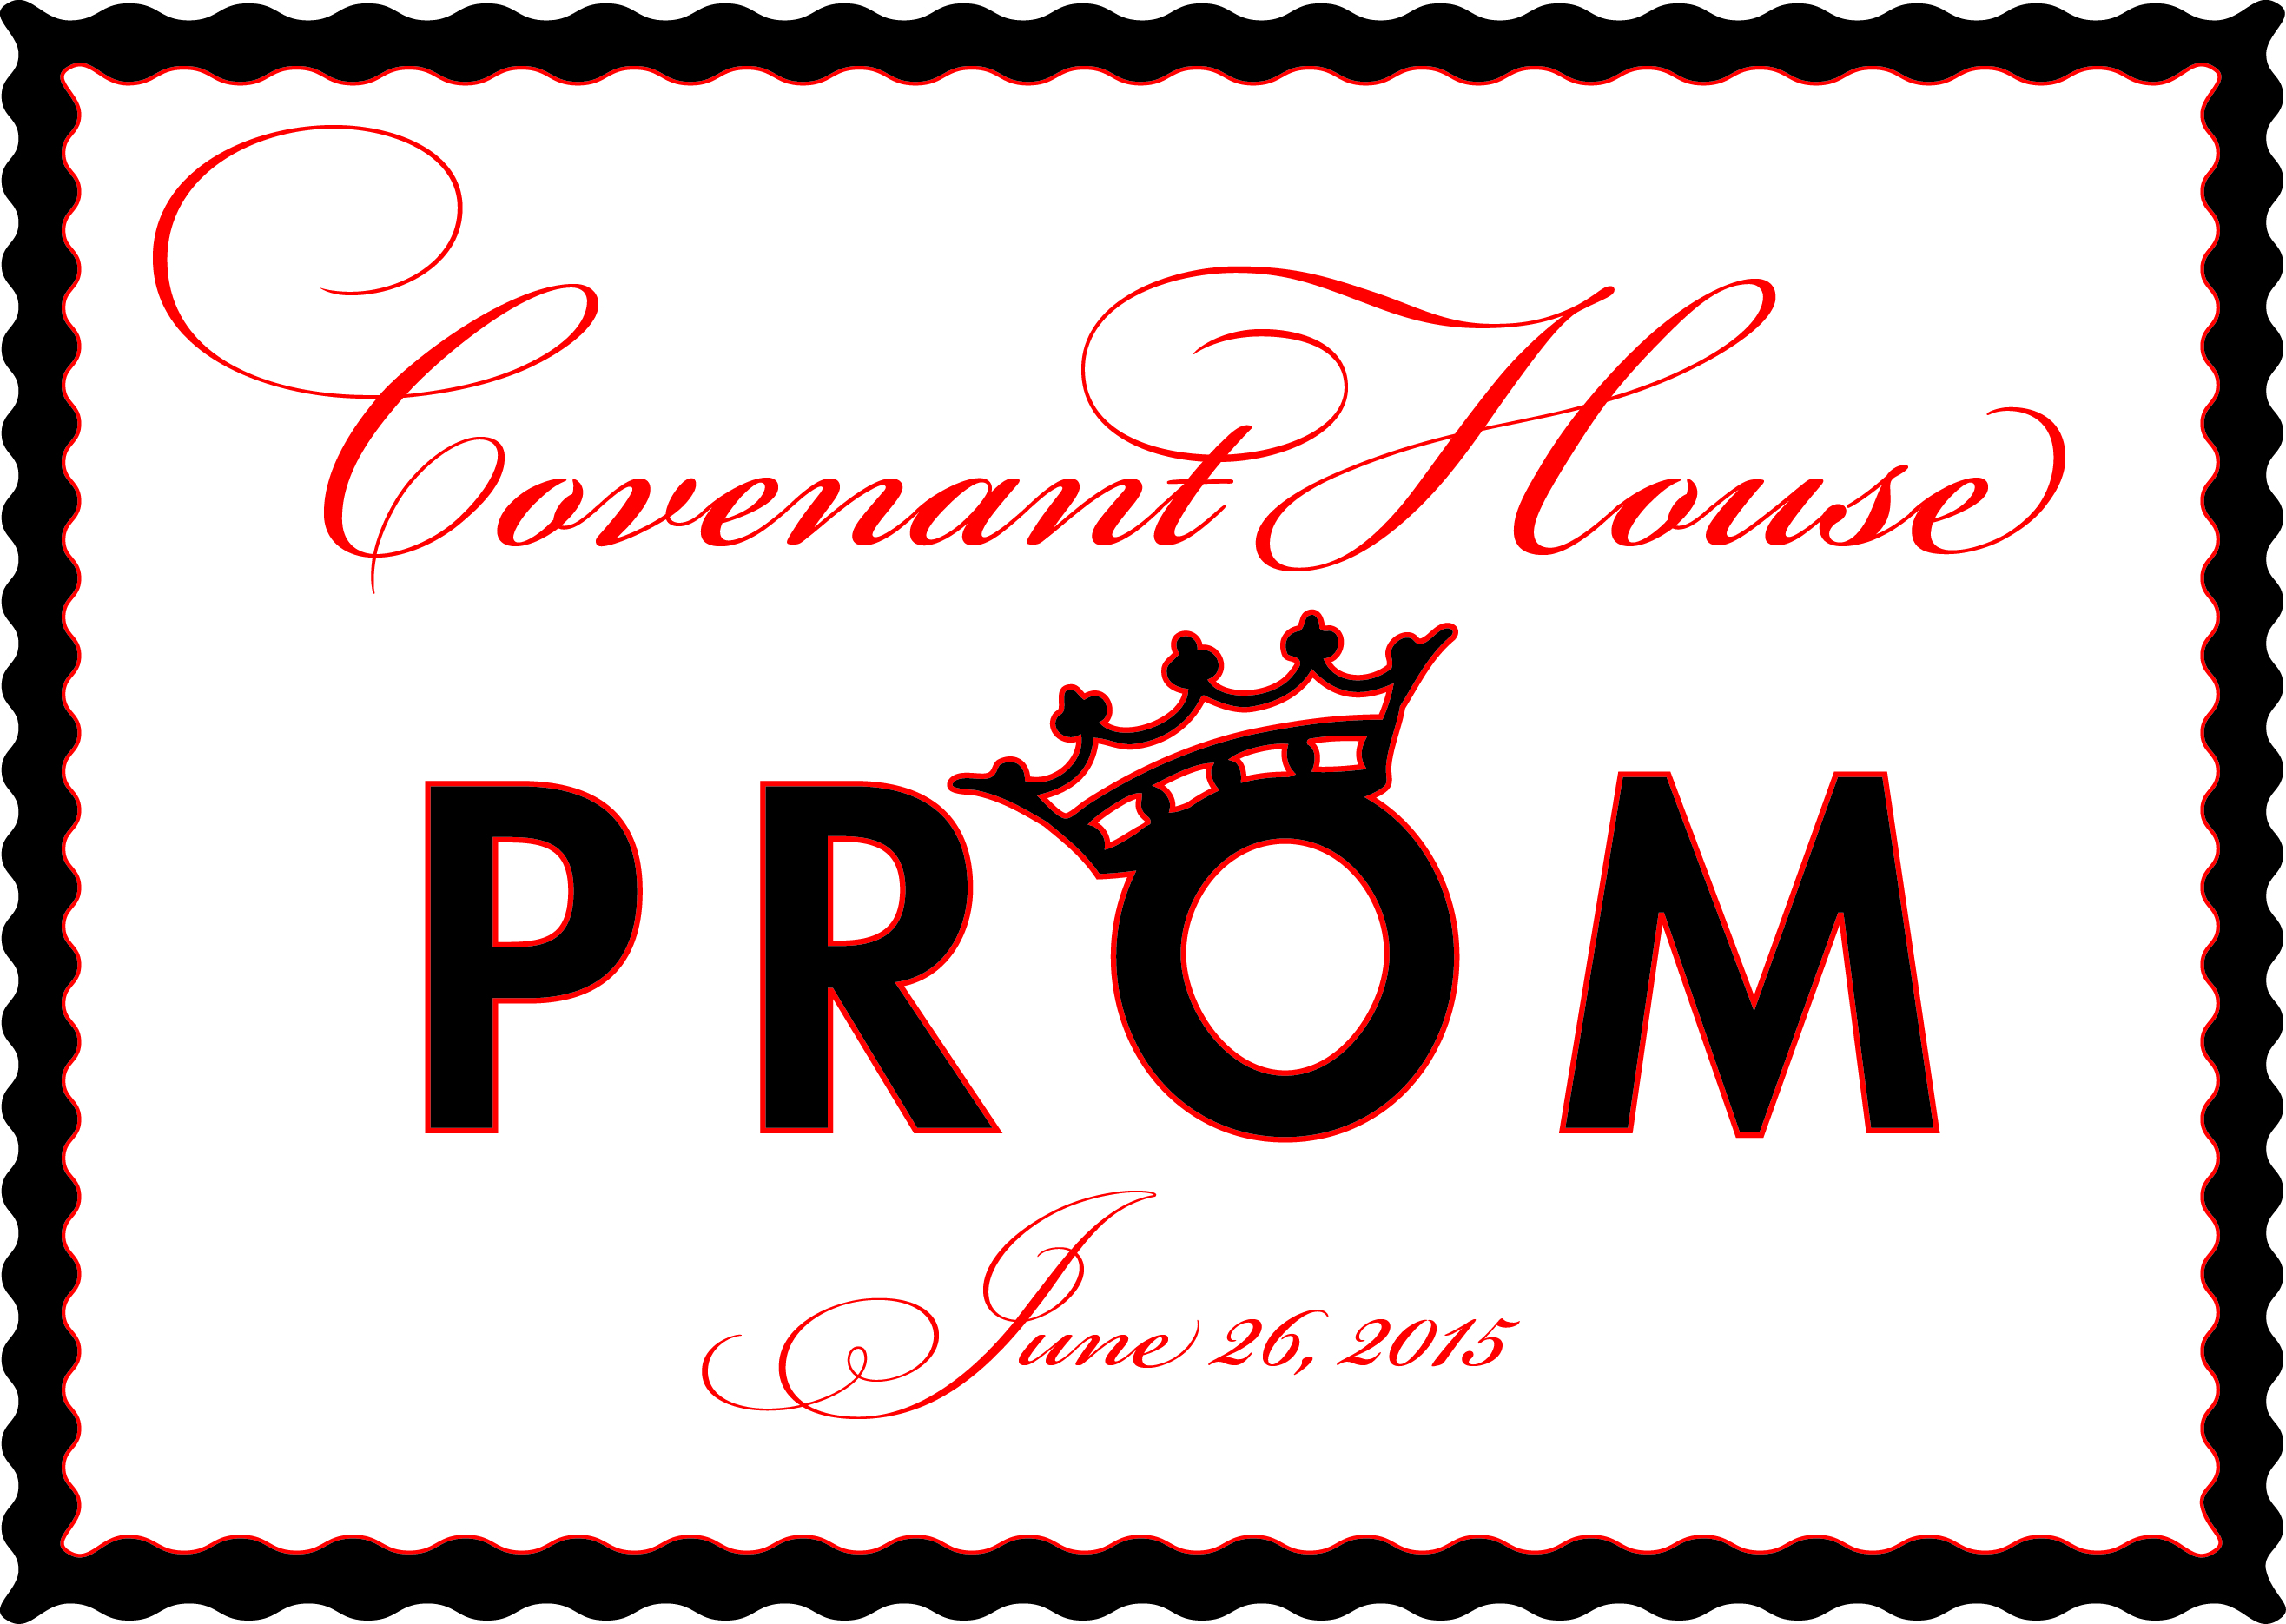 e2d1f3d5807ce1b2aa93_Prom_Logo_with_Red.jpg